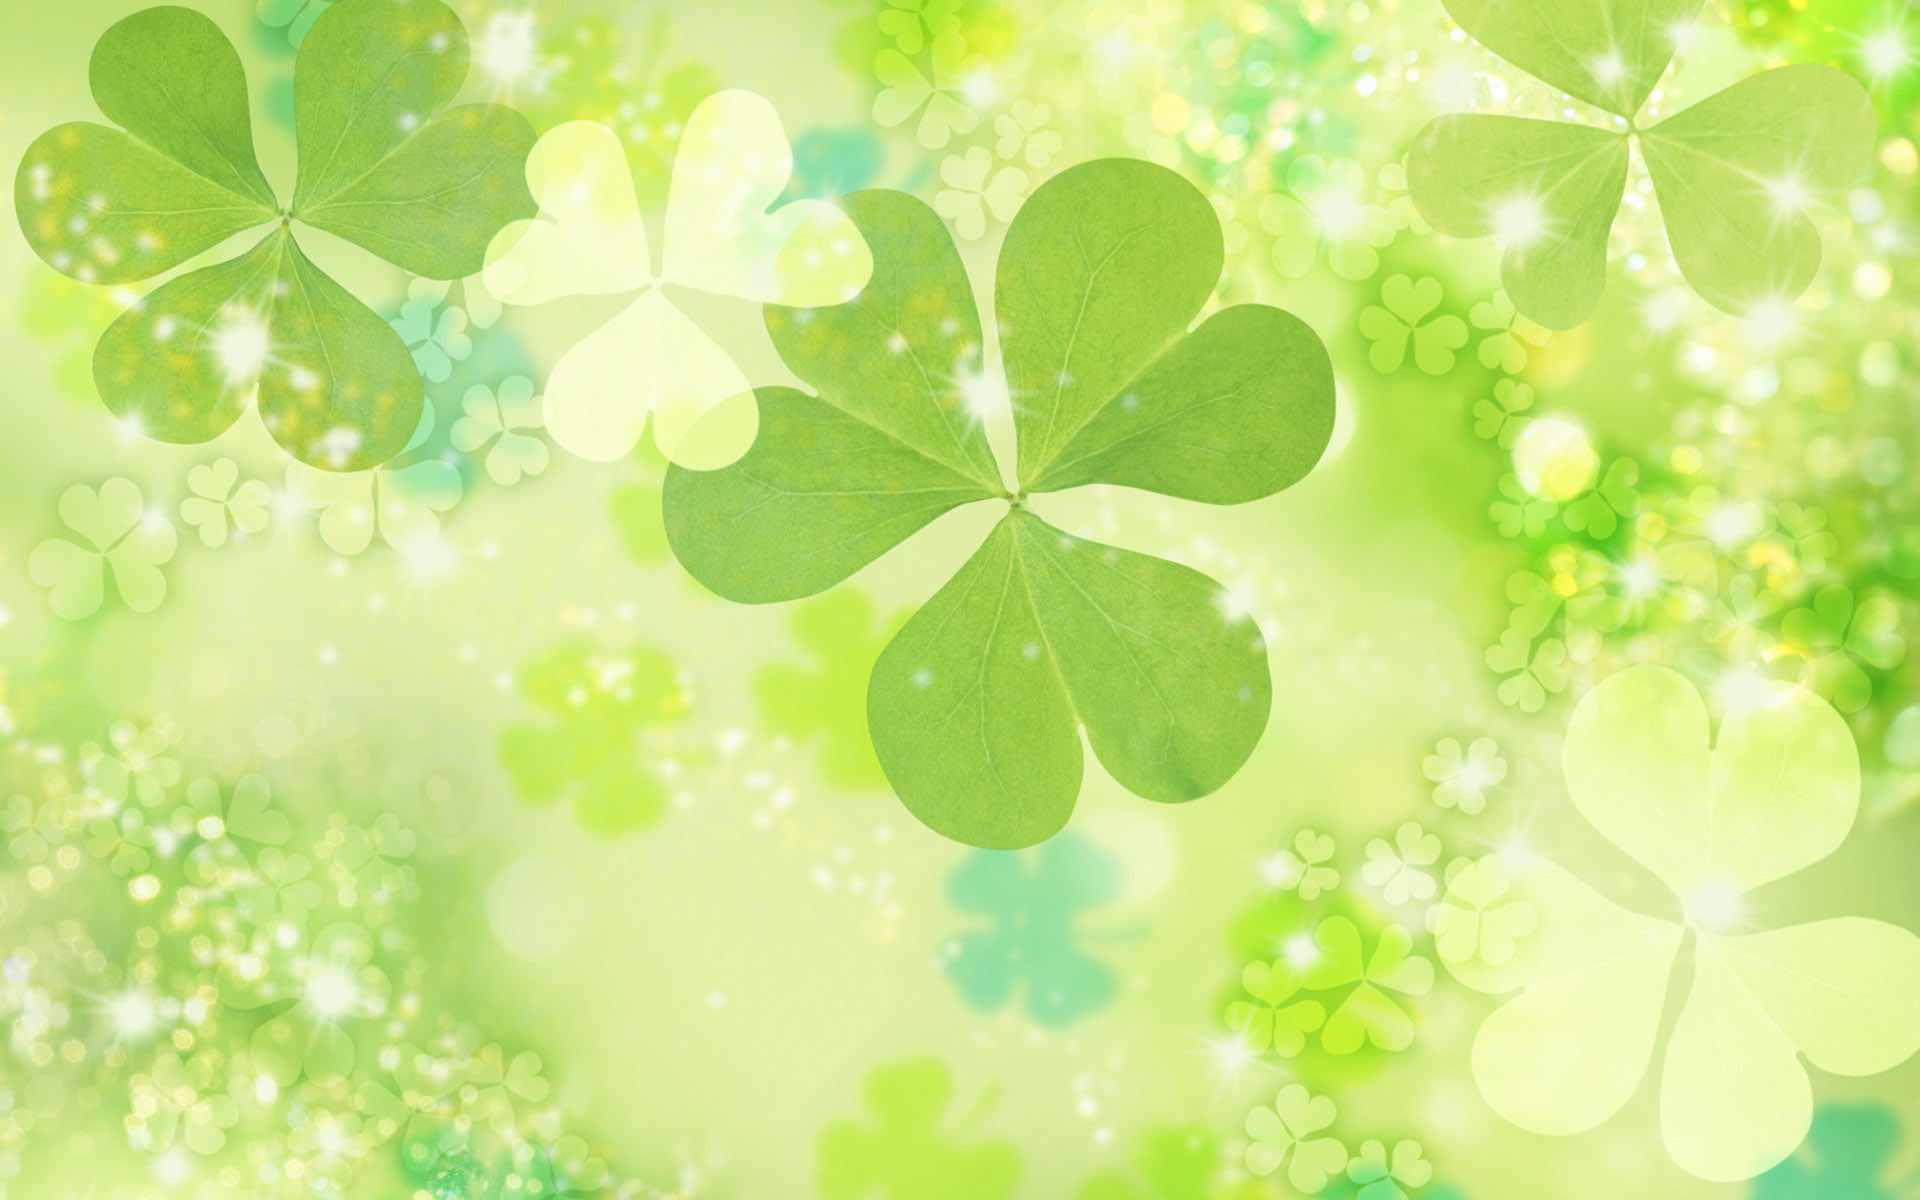 11 Free St. Patrick's Day Wallpapers You're Gonna Love